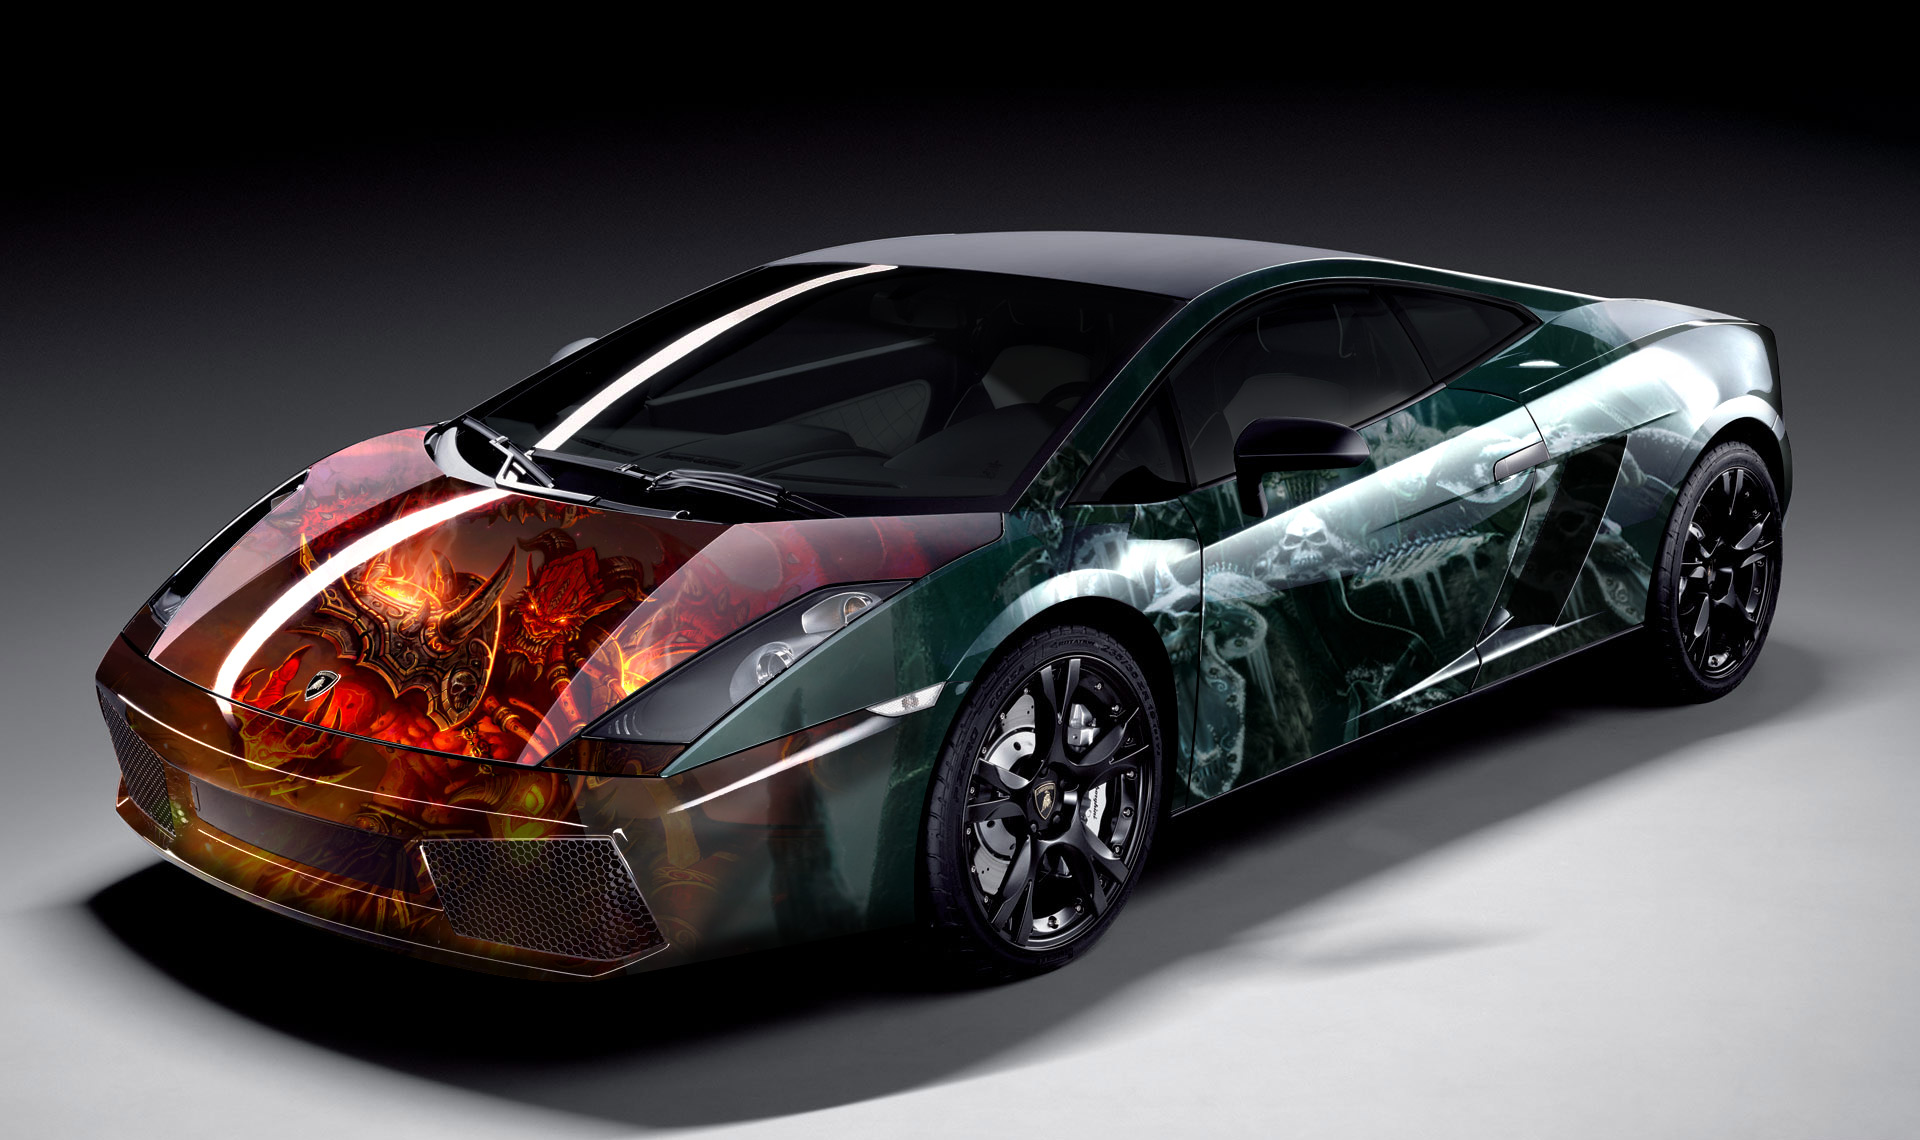 Wwwultimateprotectivefilmcomwpcontentuploads - Cool car wraps